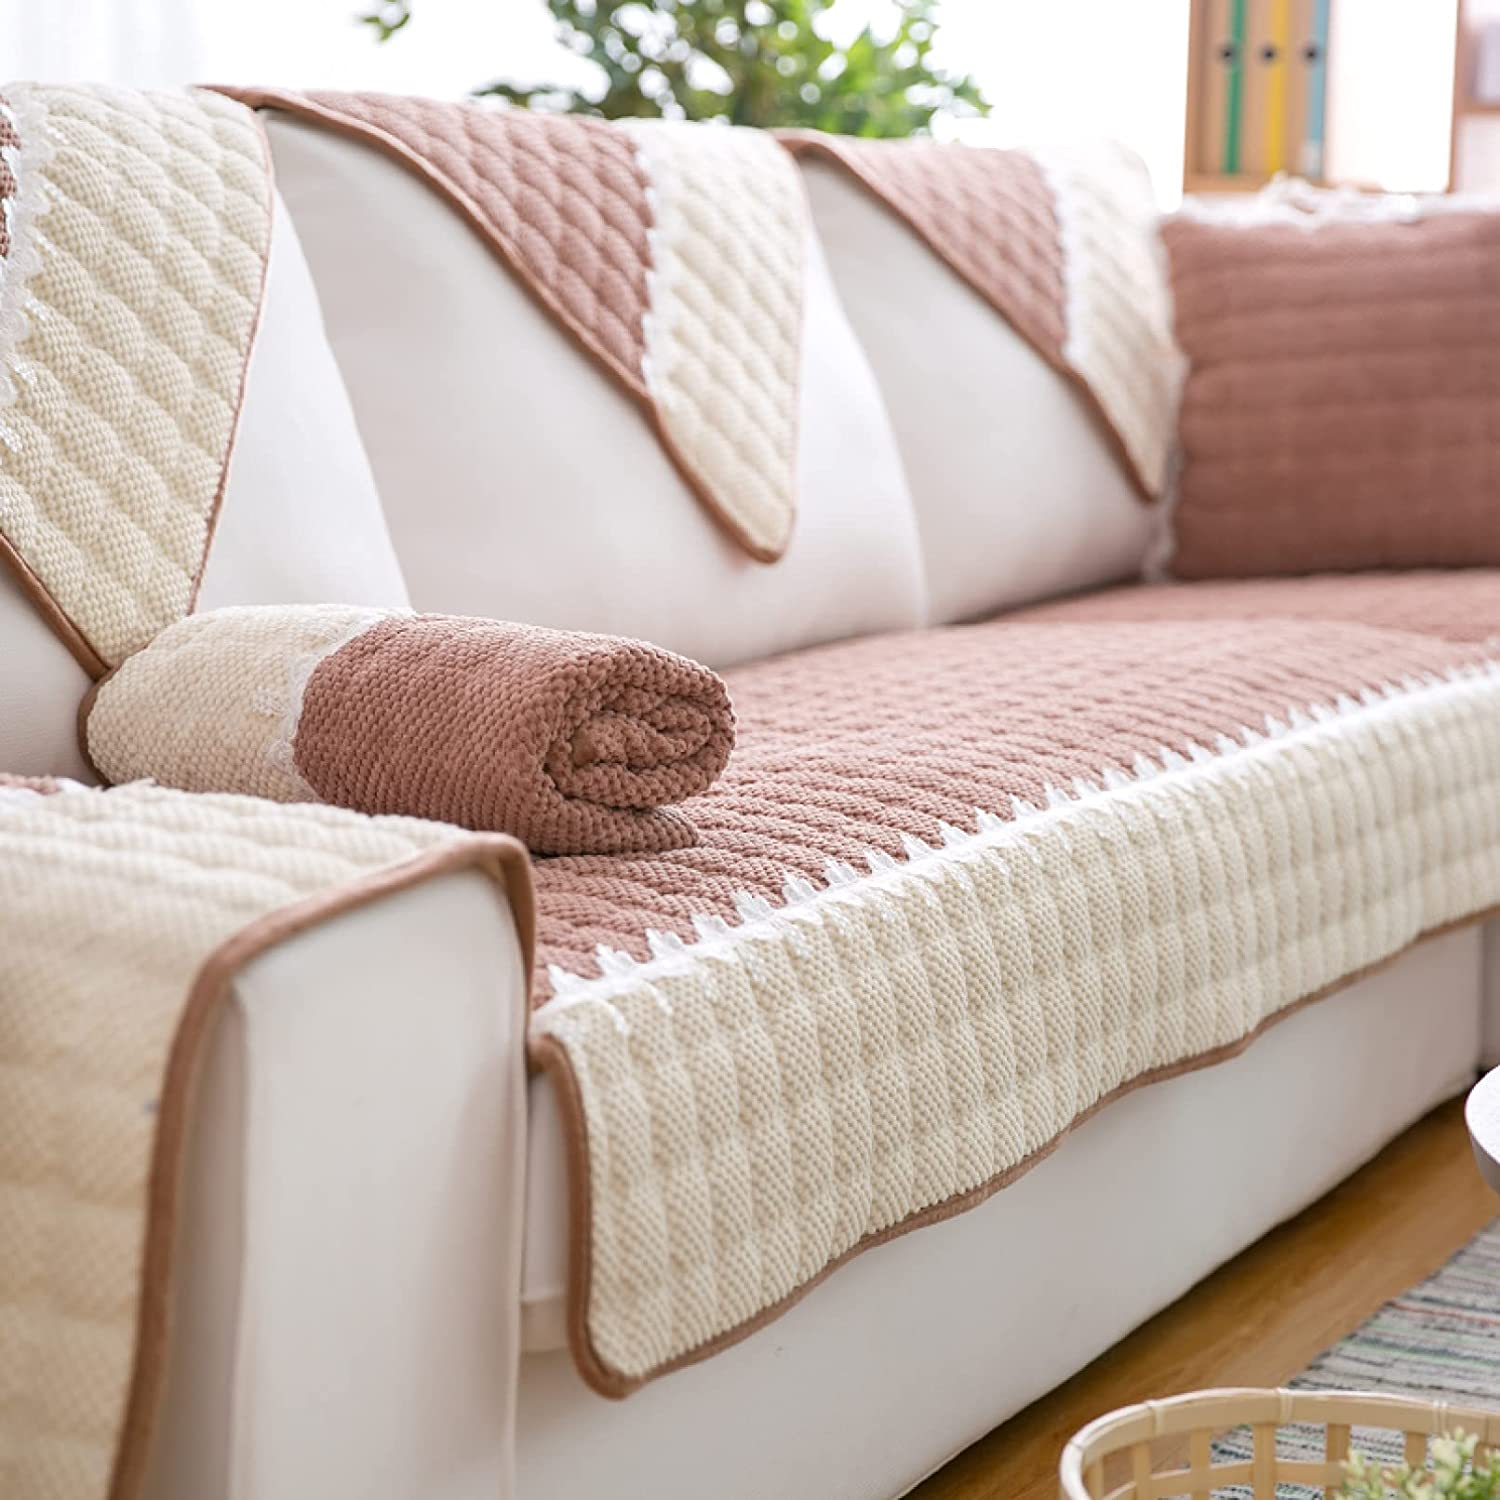 NOMIMAS Stylish Patchwork Directly managed store Sofa Dedication Slipcover C Water Resistant Couch